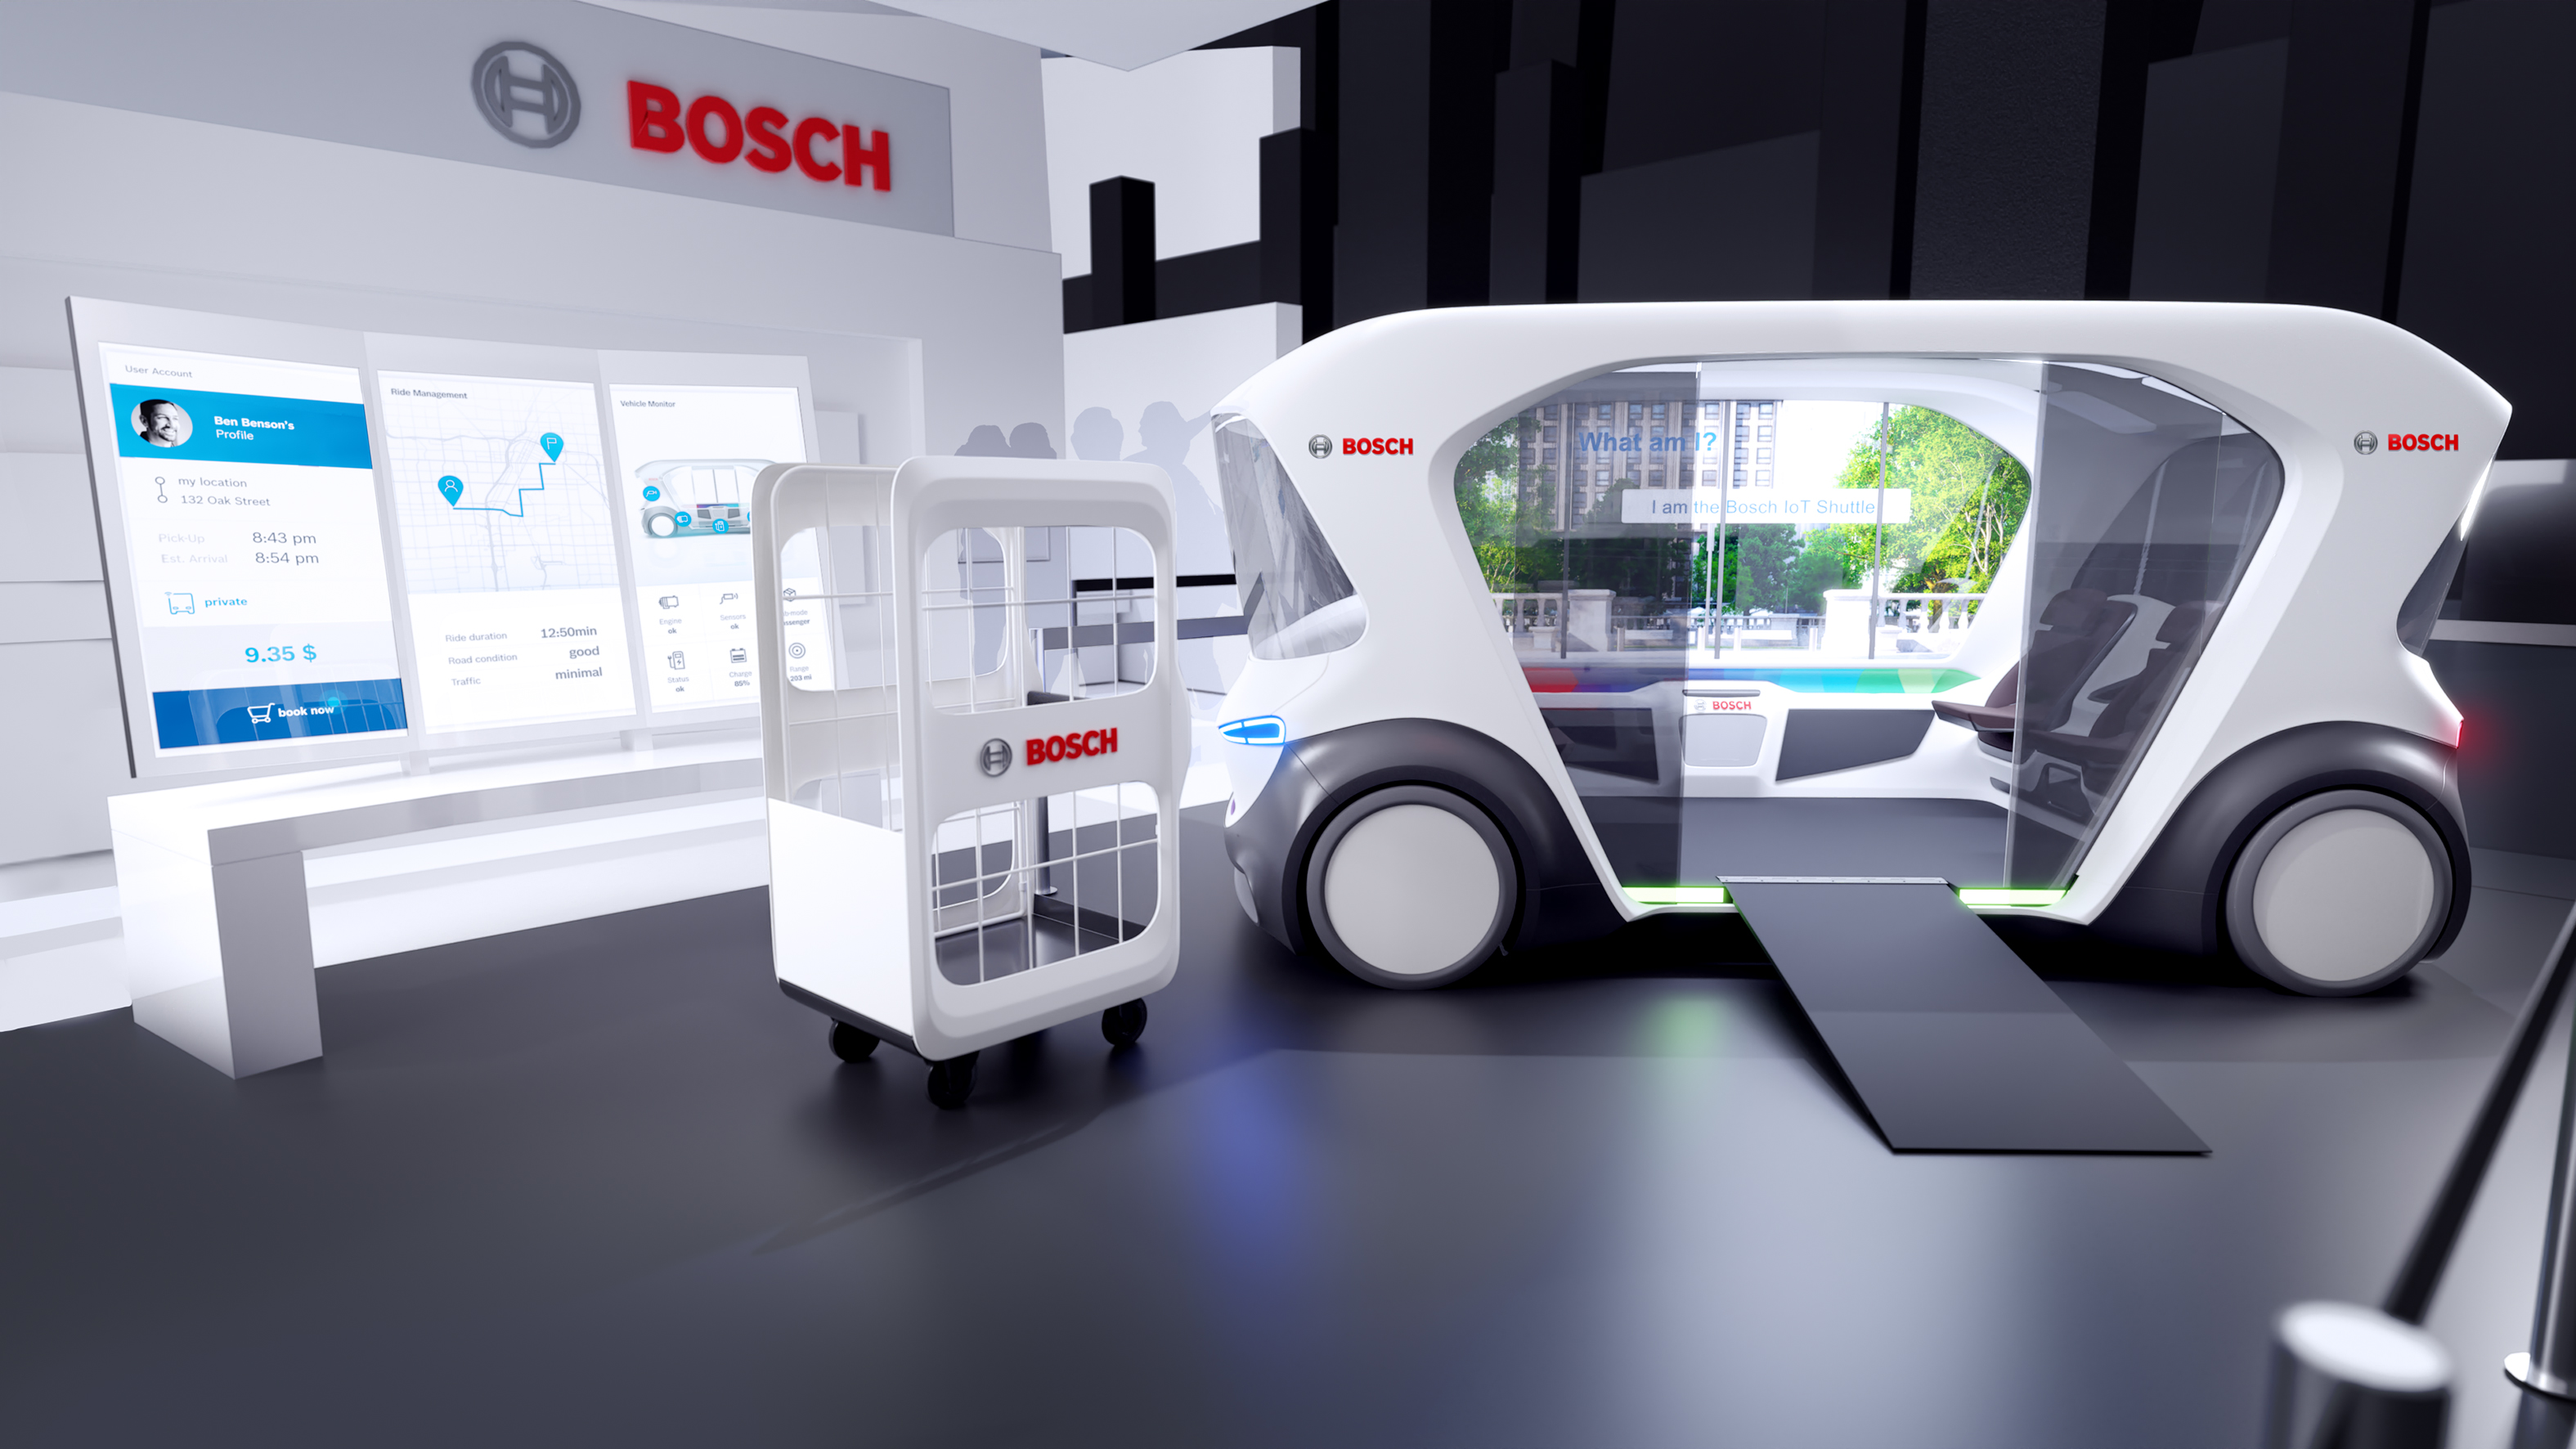 Bosch's enhanced concept shuttle at CES 2020 in Las Vegas